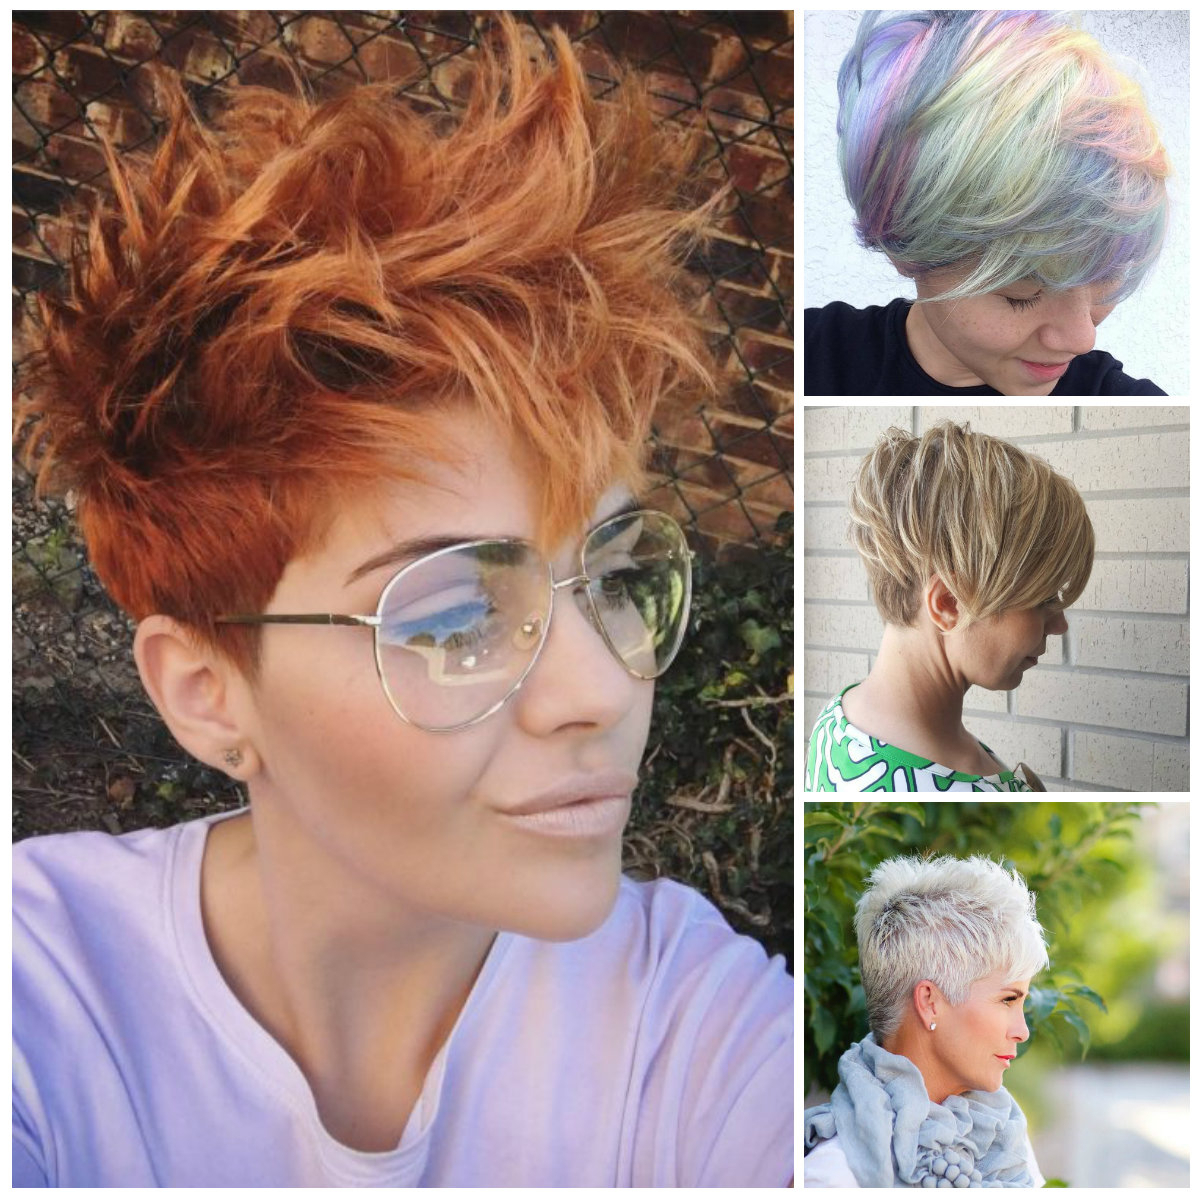 Trendy Pixie Haircuts For 2017 | 2019 Haircuts, Hairstyles For Bold Pixie Haircuts (View 9 of 20)